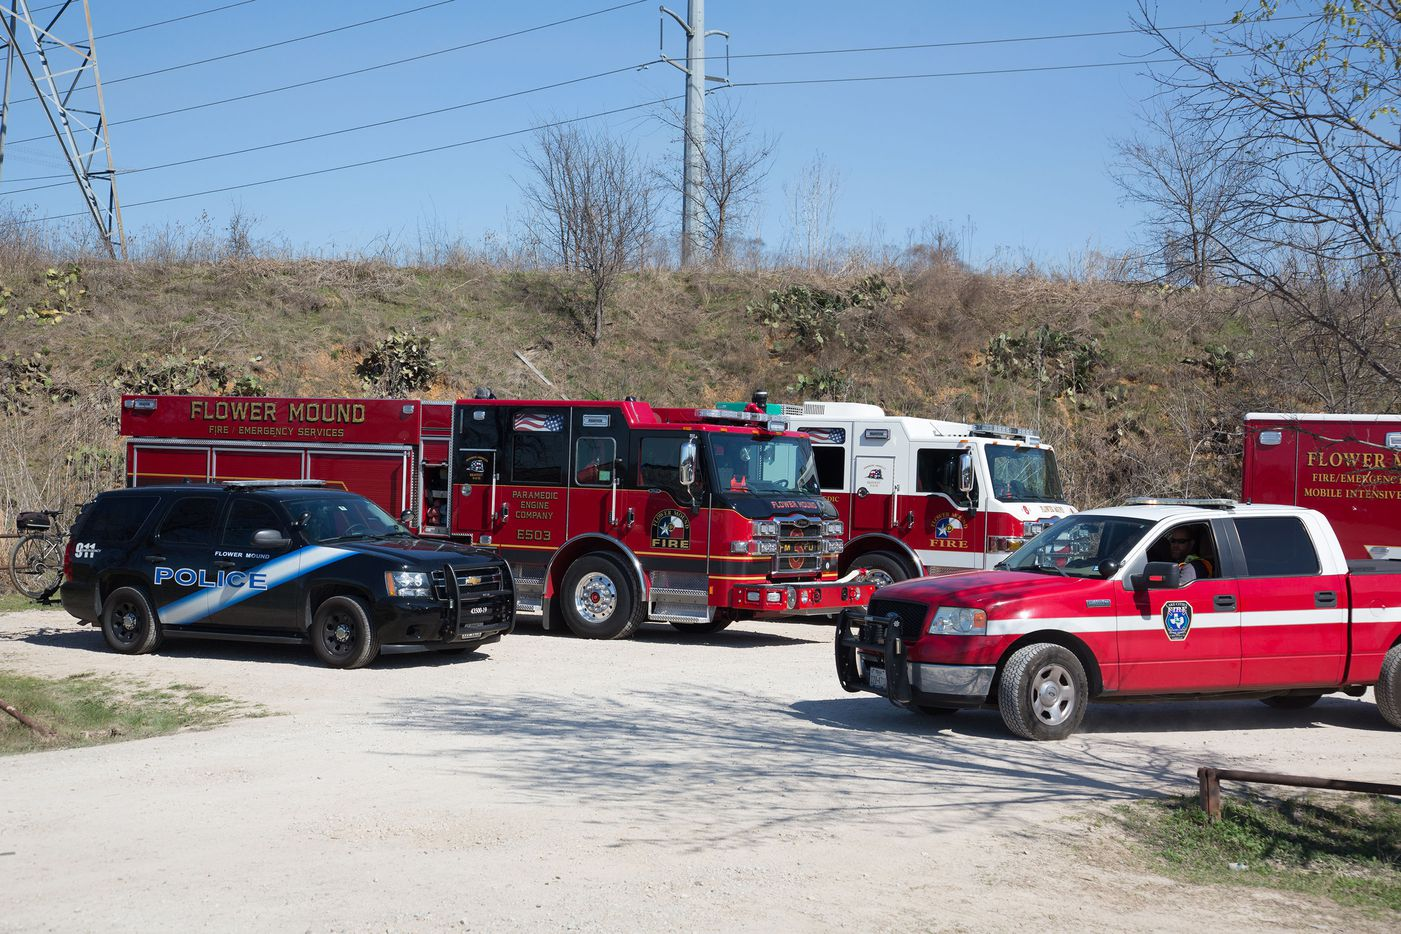 The Flower Mound Fire and Police Department investigate and search for a 2-year-old's missing father at Knob Hills Bike Trail, Tuesday, March 7, 2017, in Roanoke, Texas.